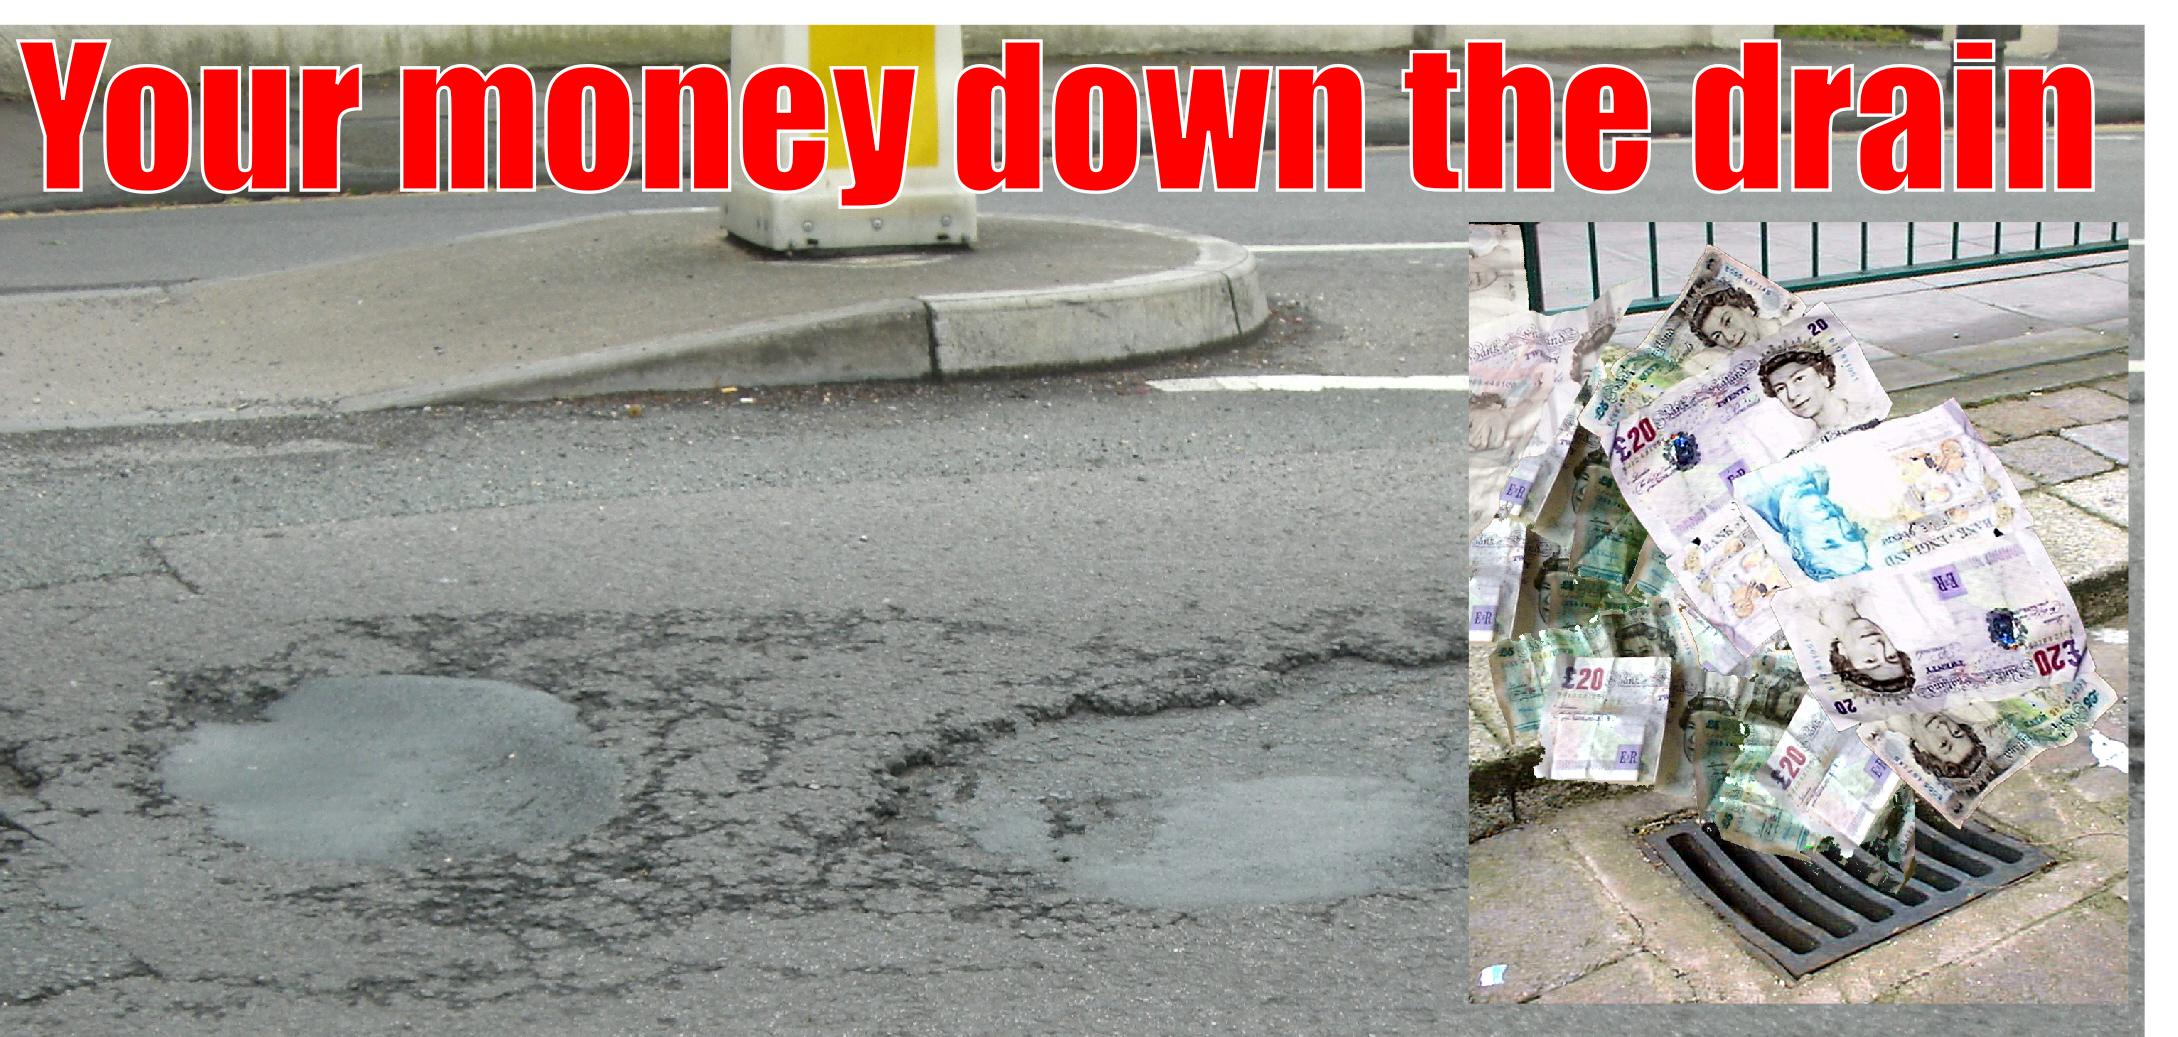 County Council pays out nearly £18,000 of taxpayers' money for pothole damage